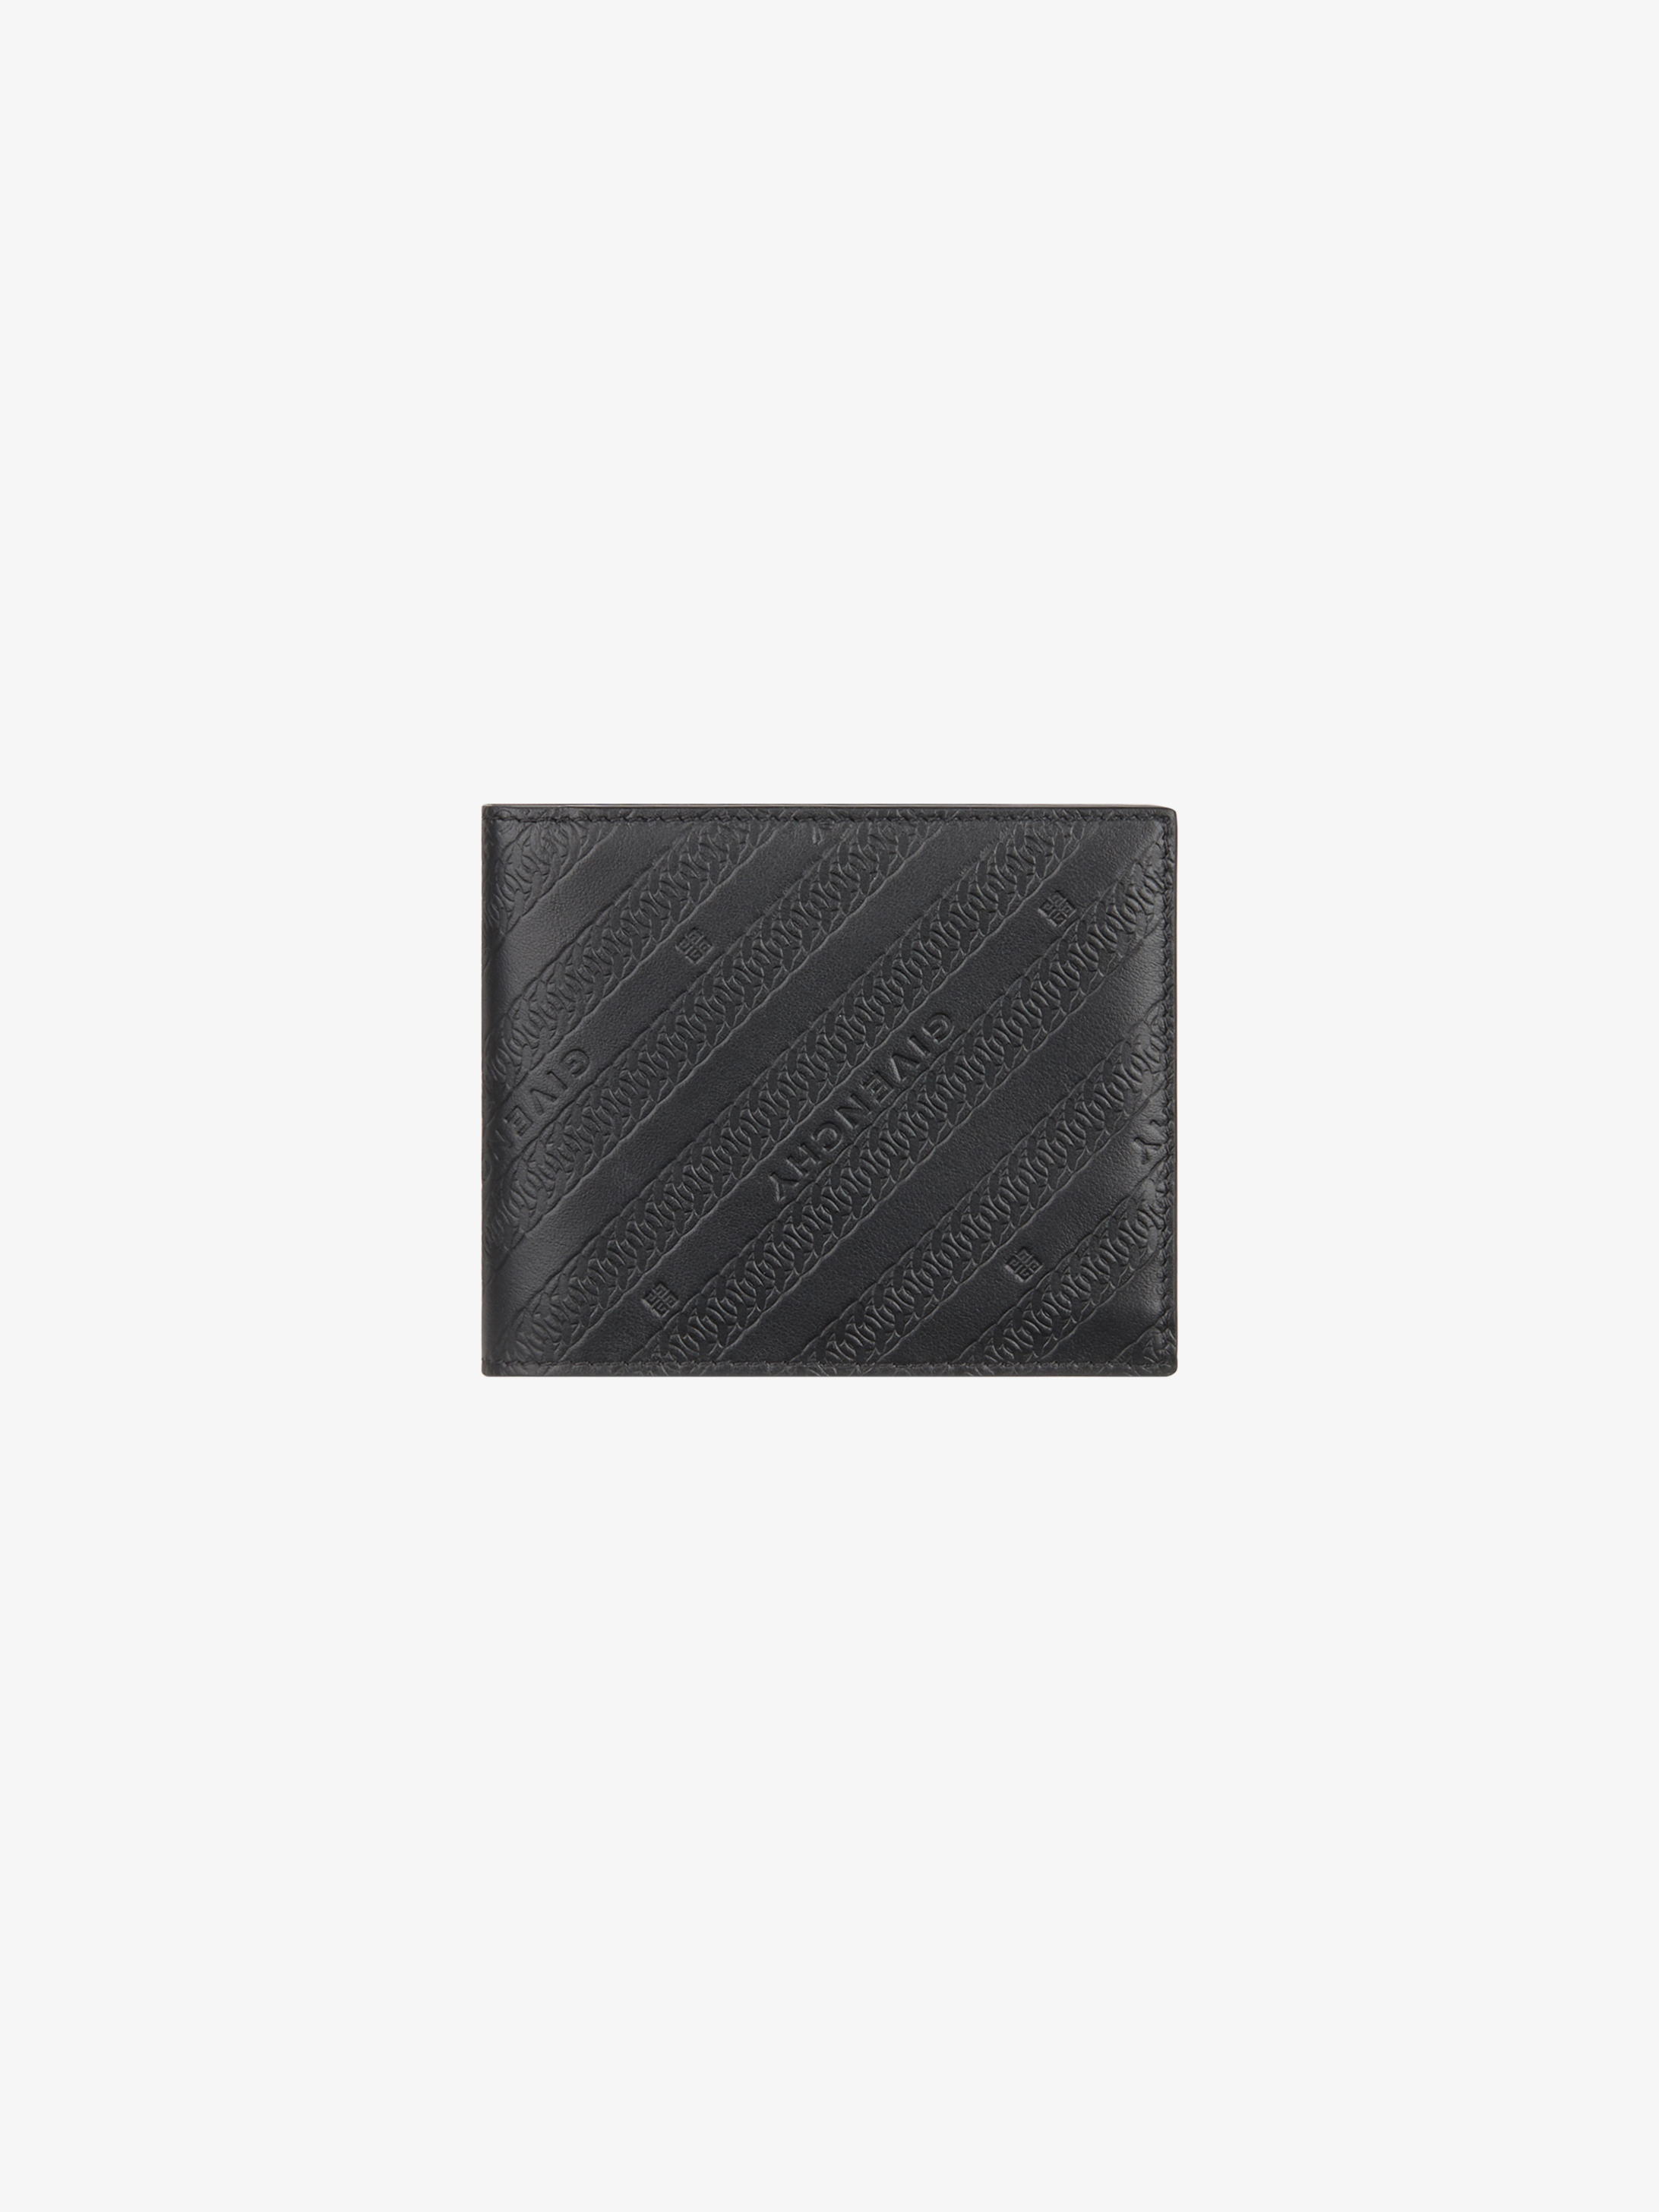 GIVENCHY wallet in leather